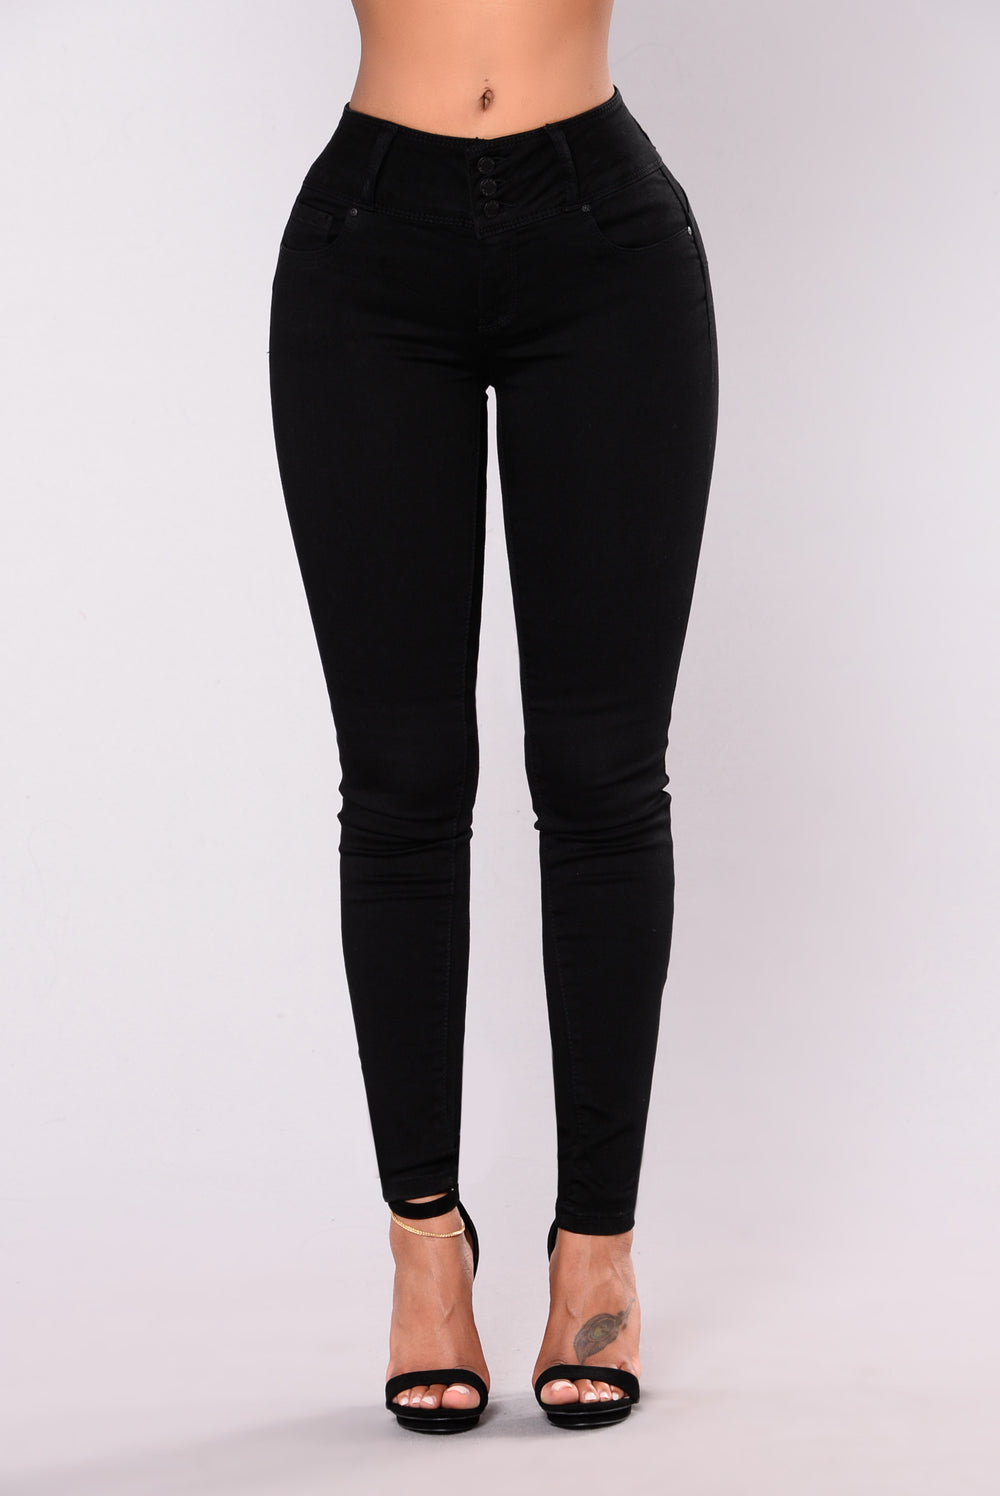 Round Of Applause Booty Shaped Jeans - Black